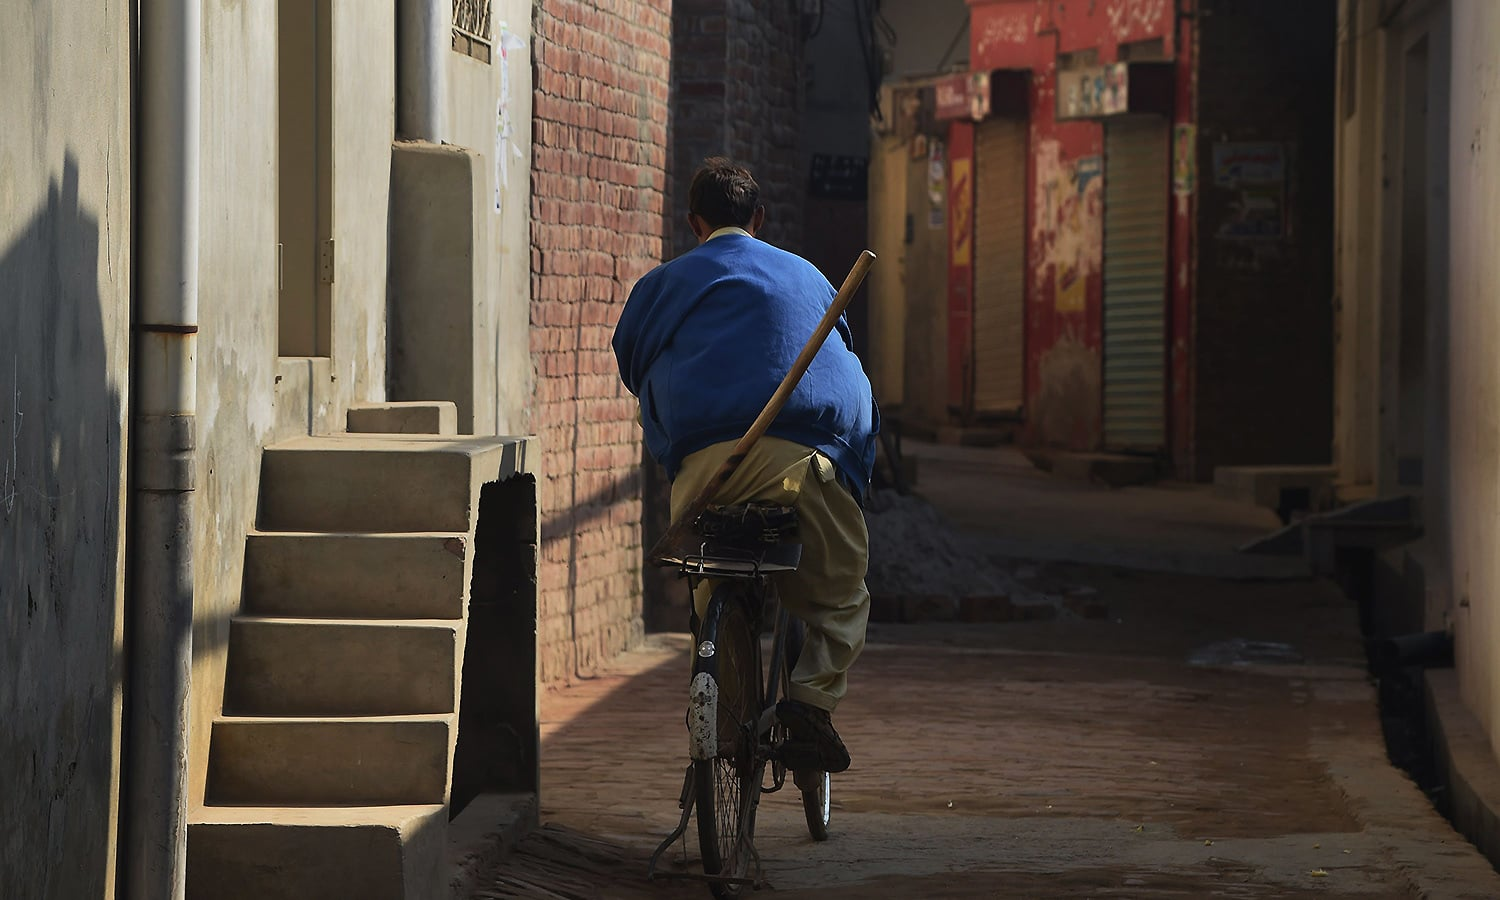 A Pakistani victim of child abuse rides his bicycle along a street in Hussain Khan Wala village on November 20, 2015. ─ AFP